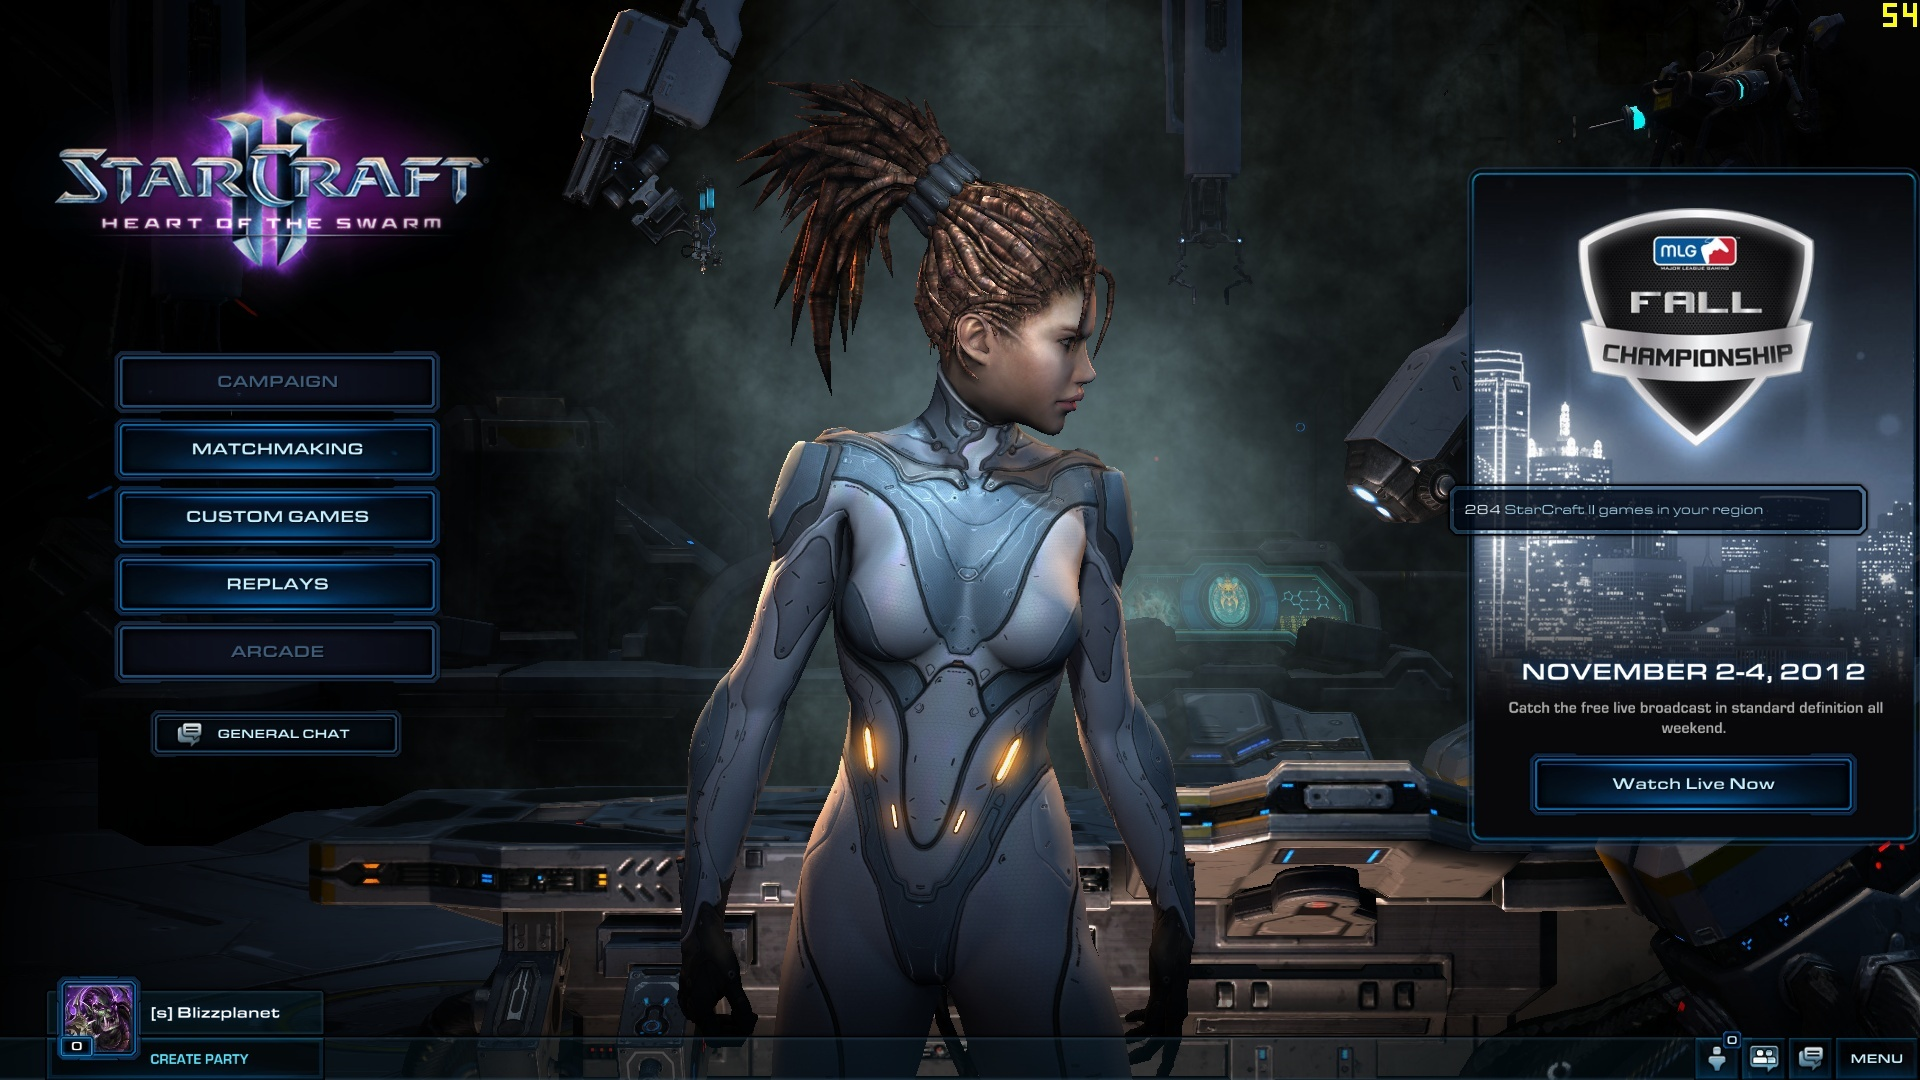 Nova Starcraft 2 Wallpaper